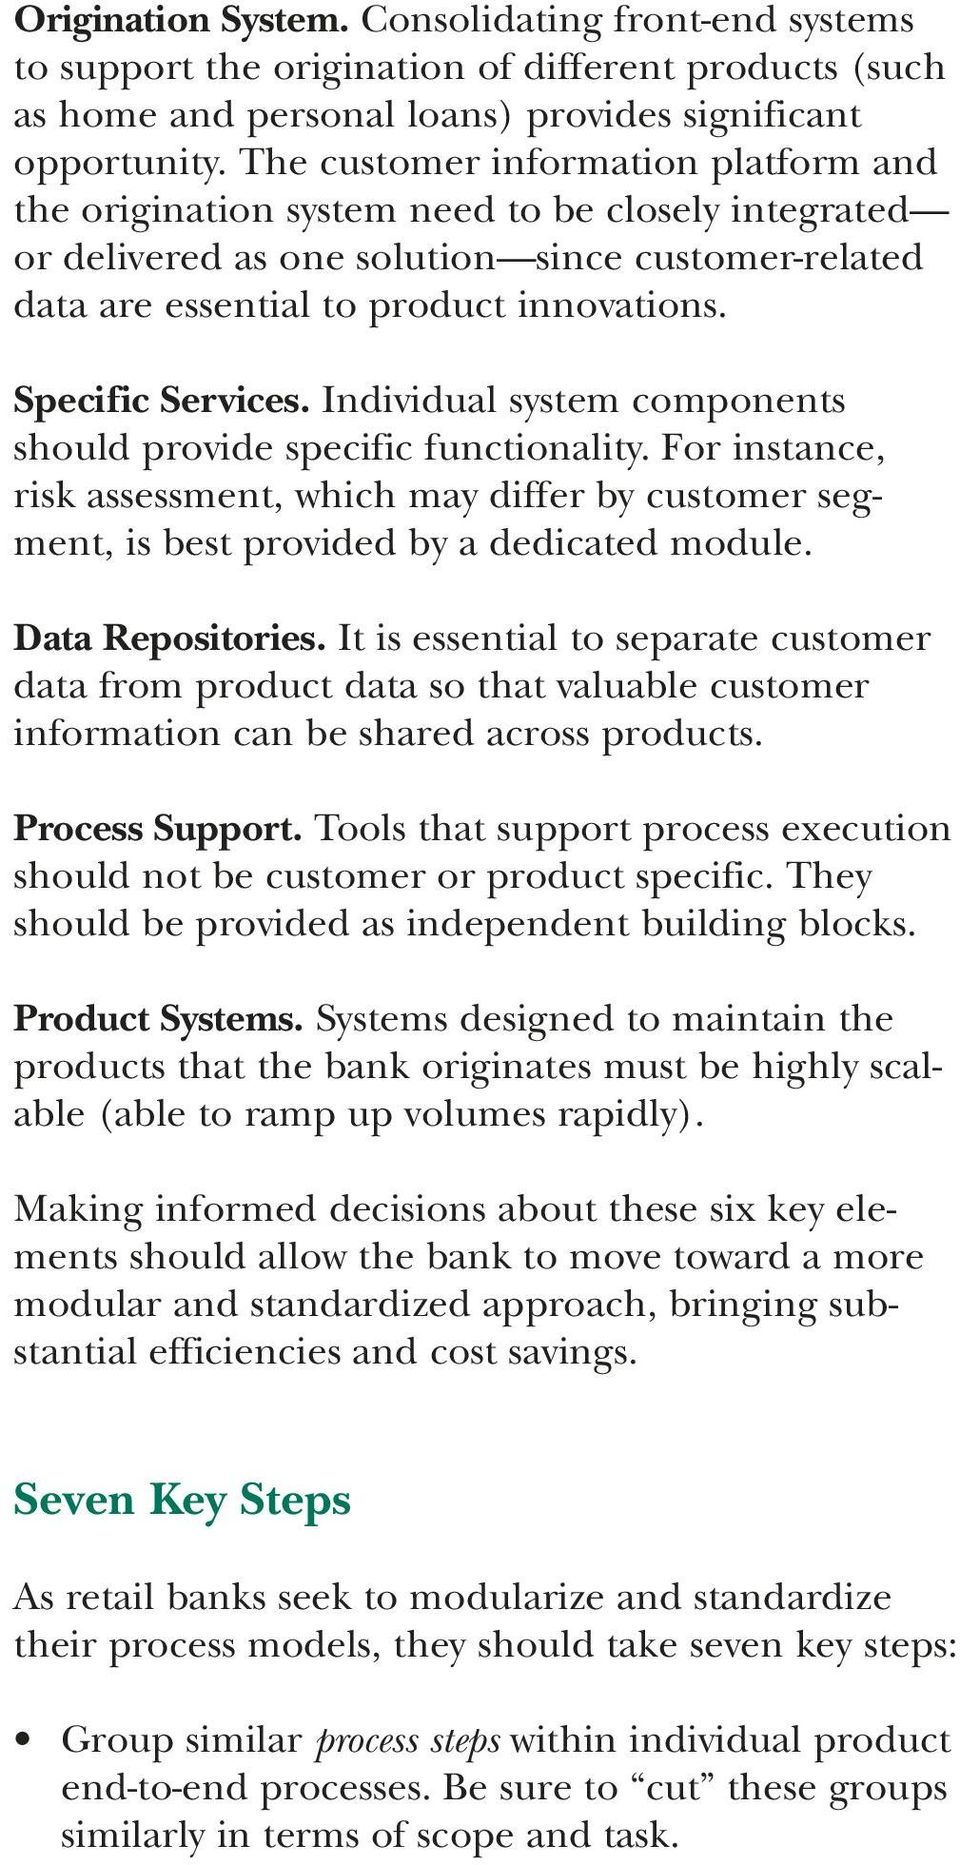 Specific Services. Individual system components should provide specific functionality. For instance, risk assessment, which may differ by customer segment, is best provided by a dedicated module.